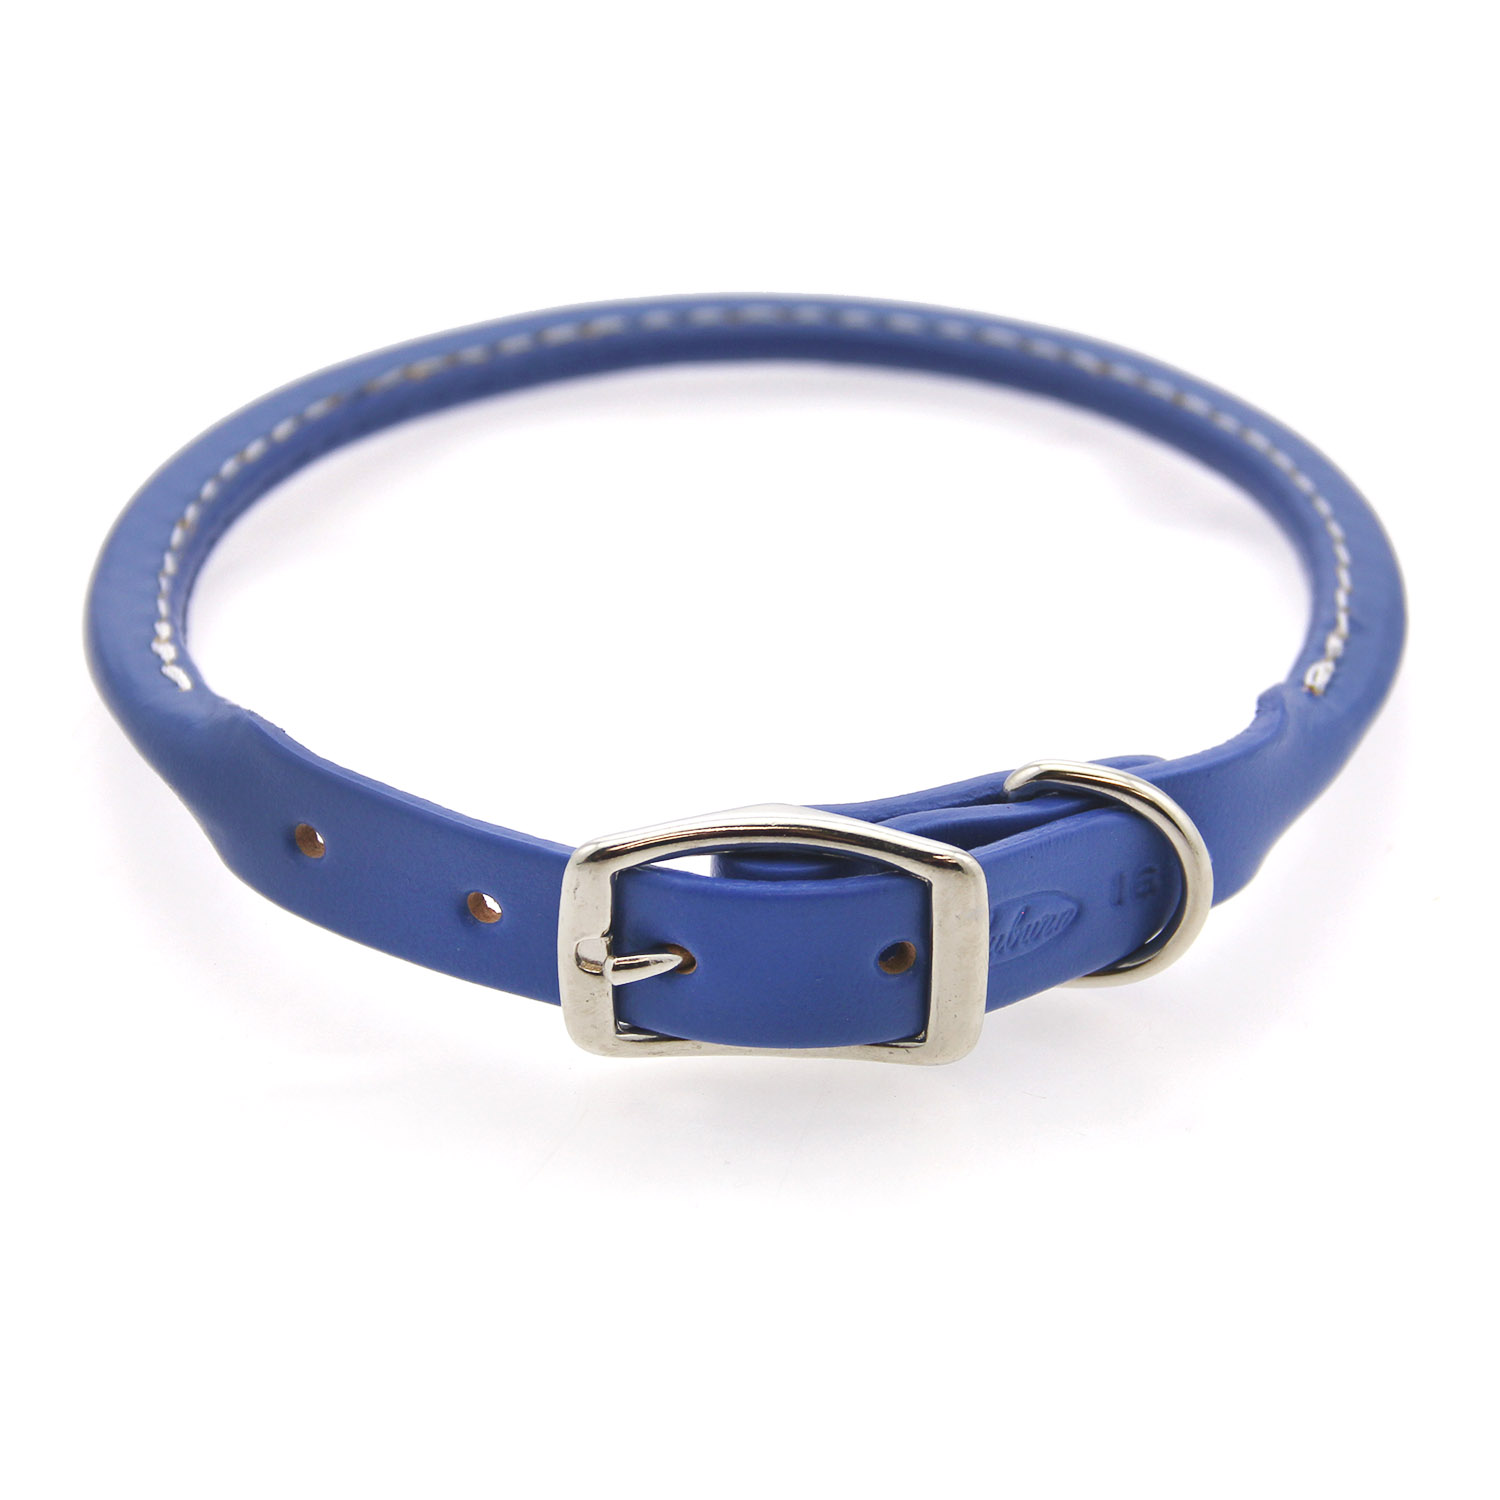 Round Leather Dog Collar by Auburn Leather - Royal Blue